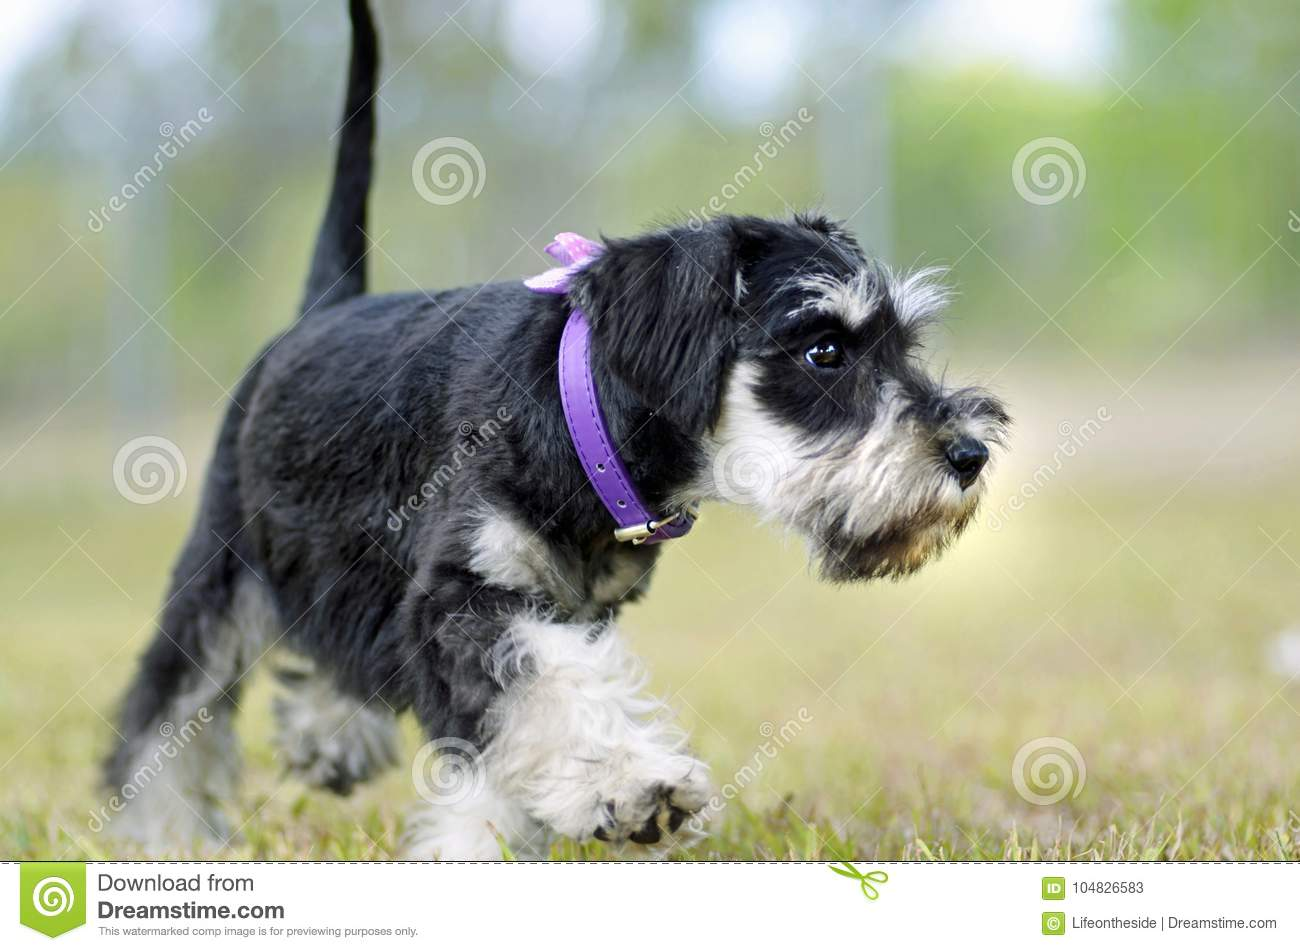 Cute black silver Miniature Schnauzer puppy dog exploring outdoors